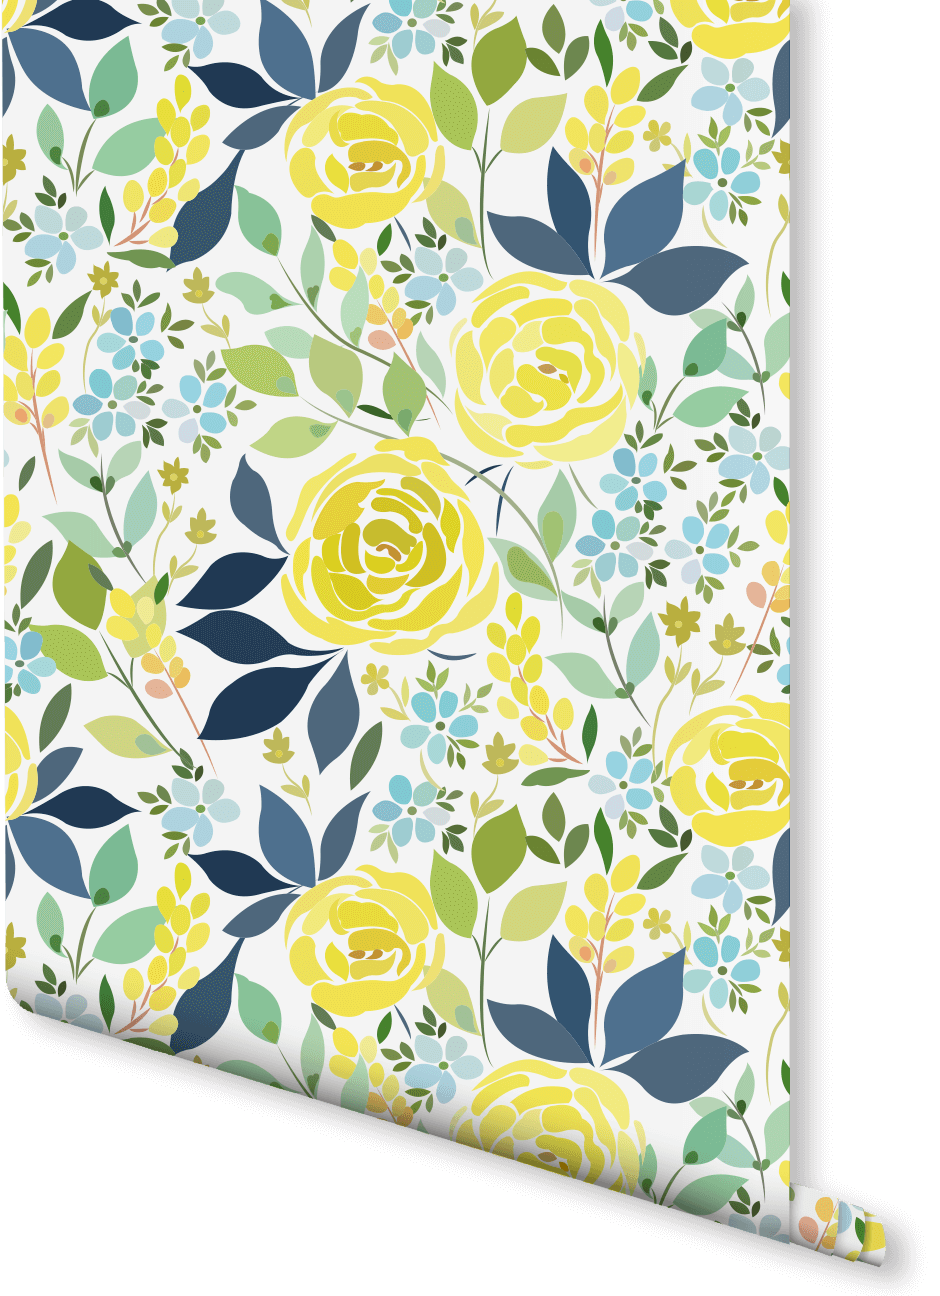 Inject a bit of zest into your home with this floral